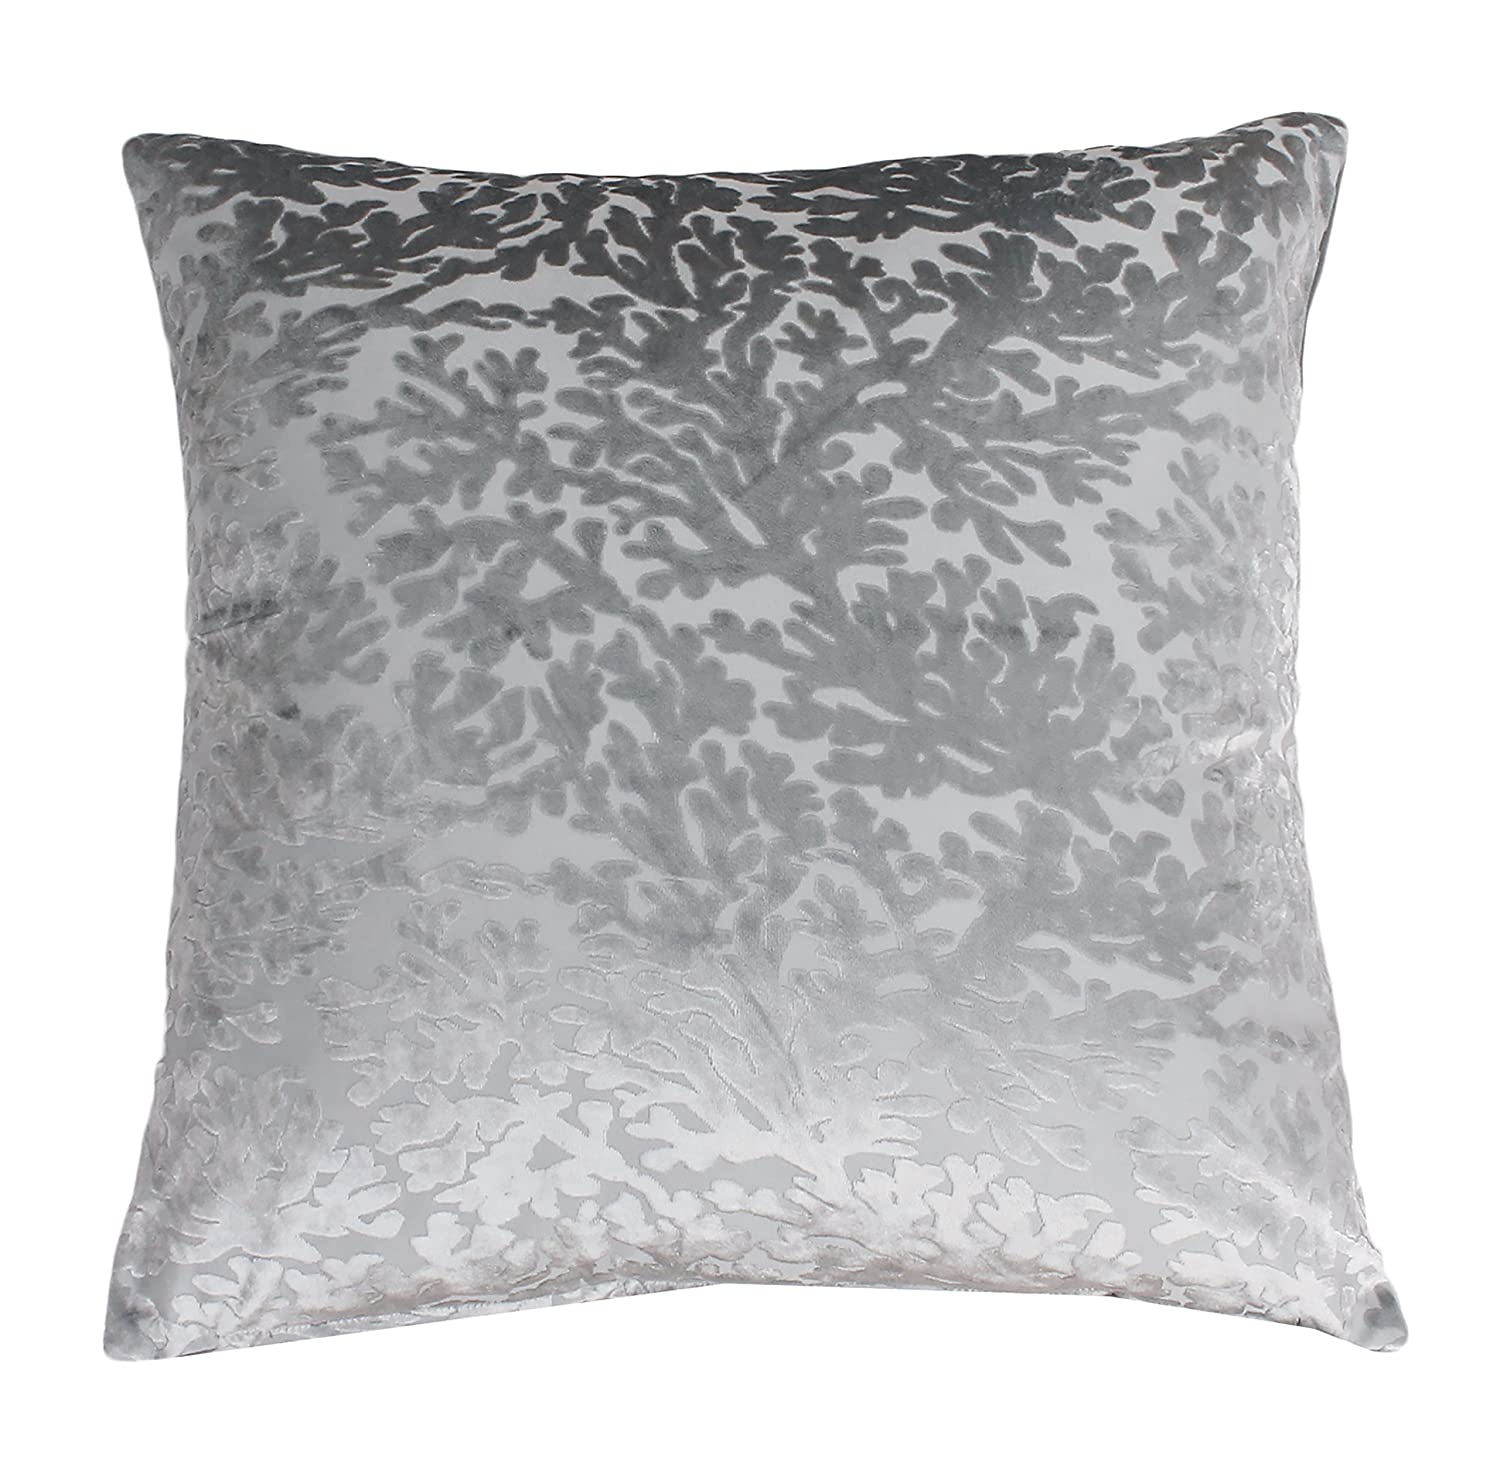 Thro TH009826011E Cara Coral Pillow 20 x 20 Silver